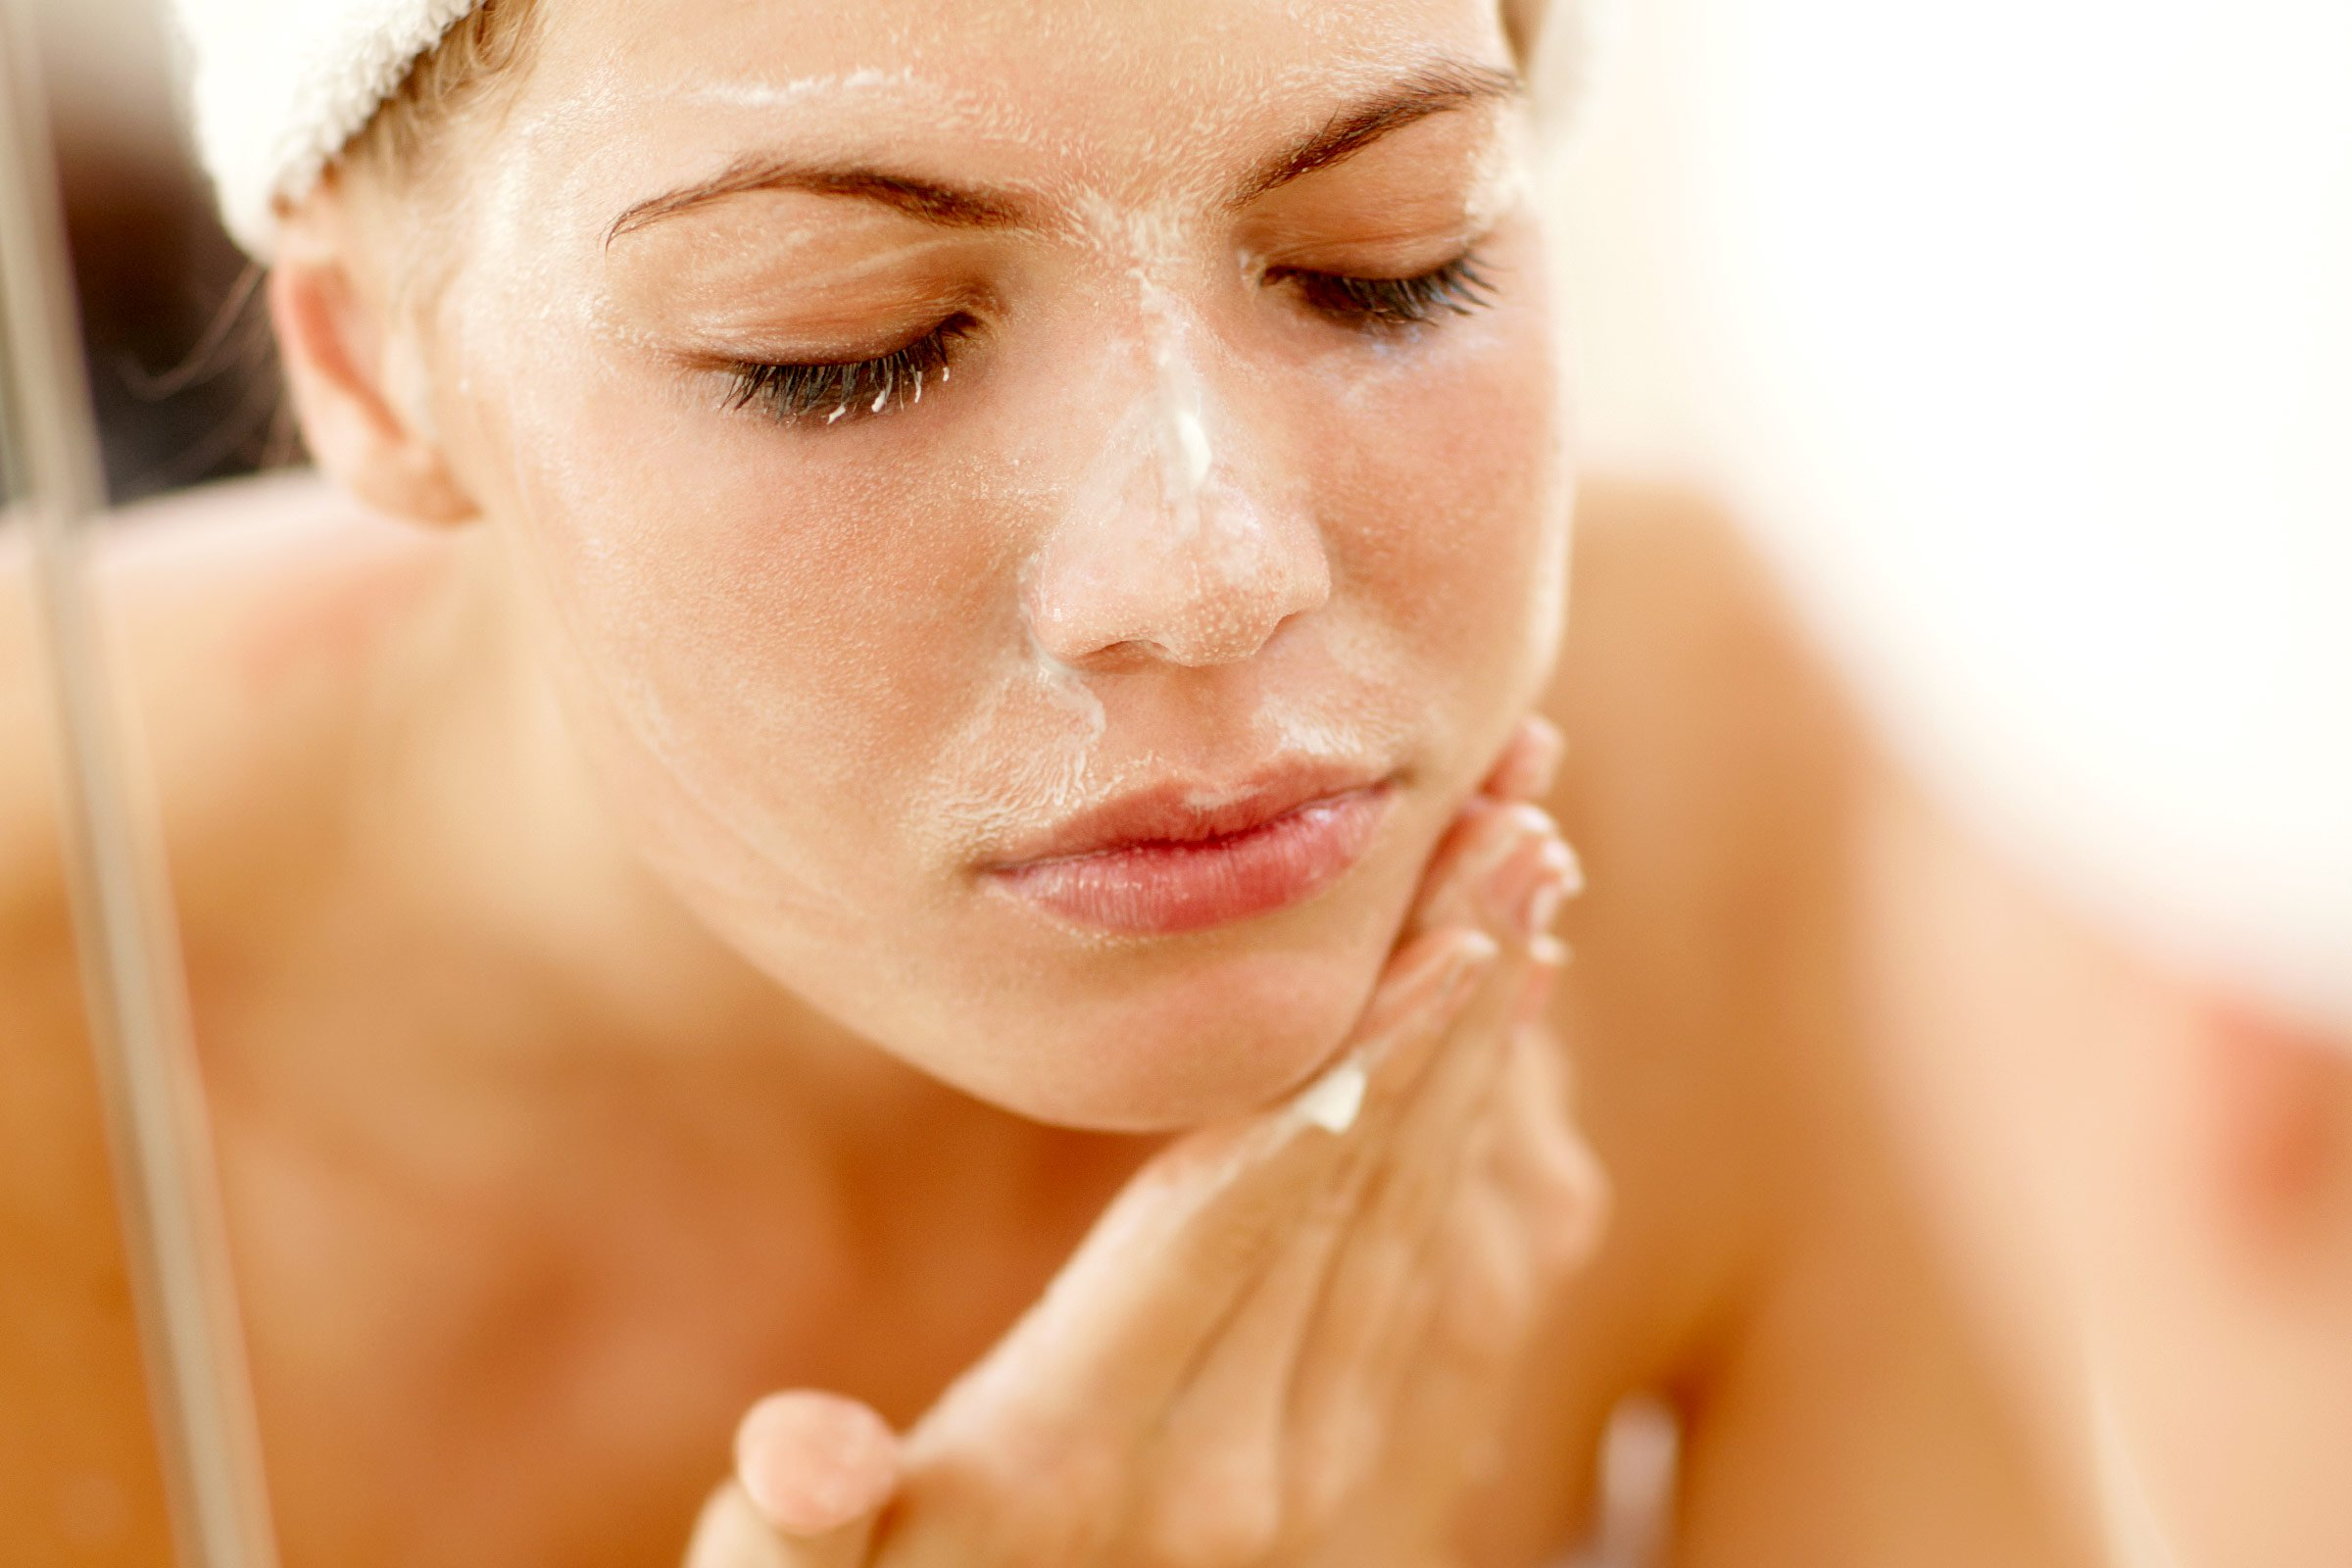 How To Use Face Scrub